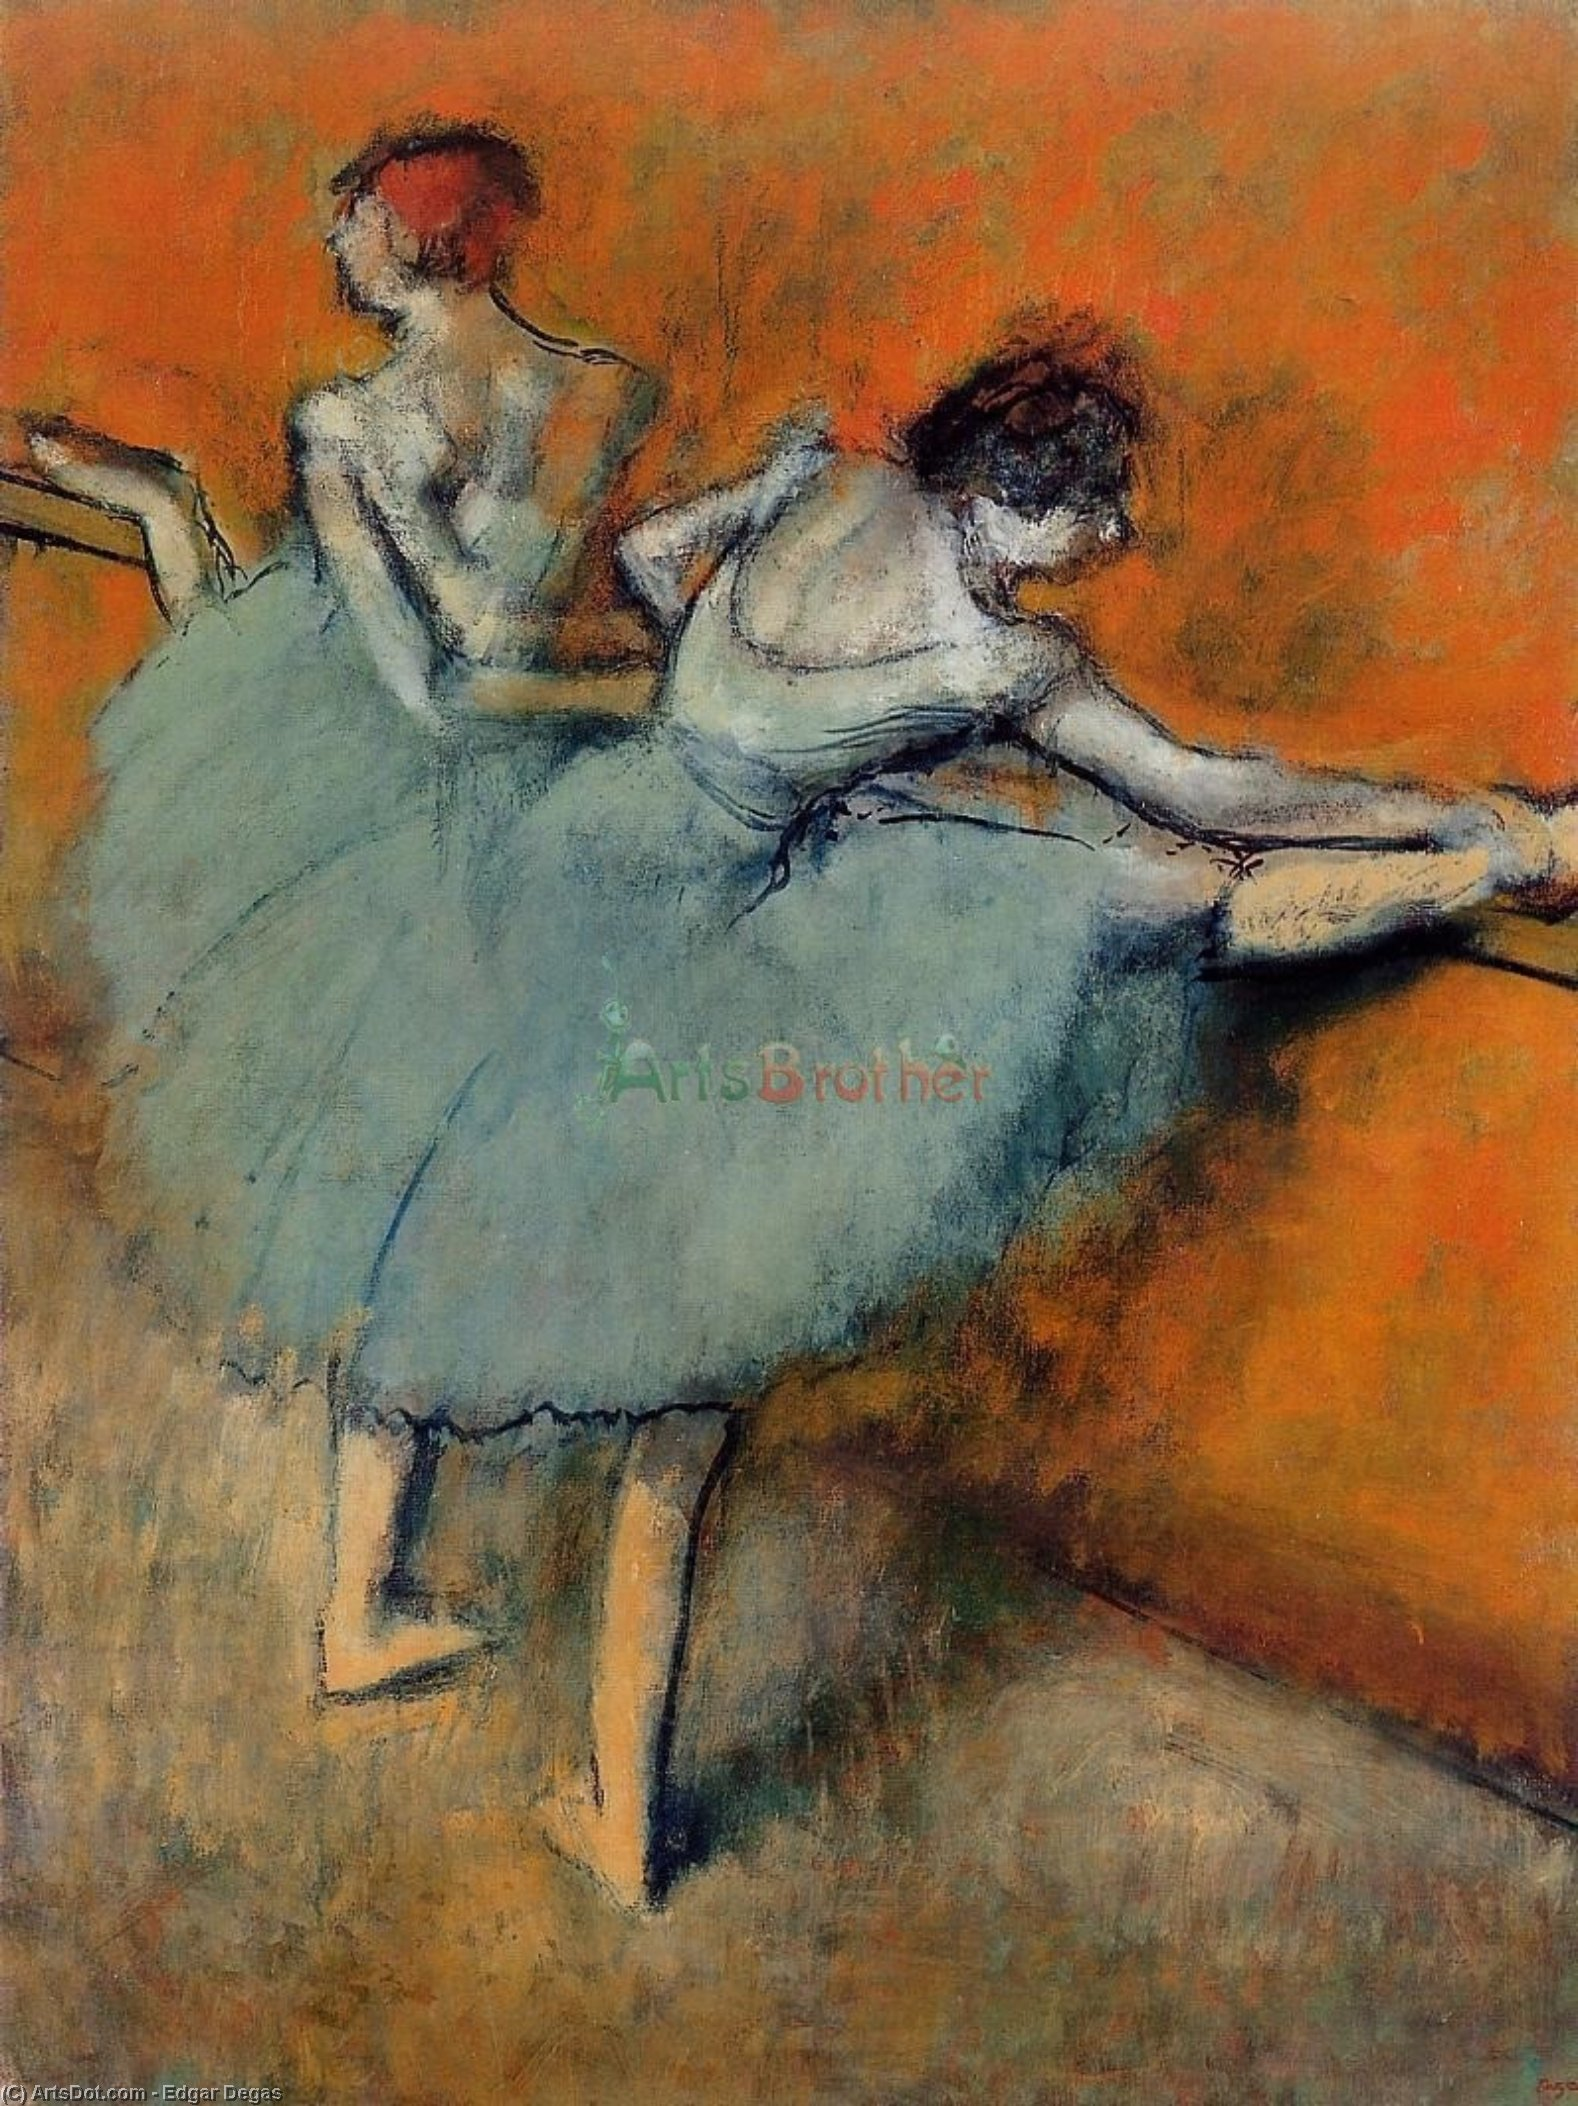 Dancers at the Barre 1, 1888 by Edgar Degas (1834-1917, France) | Oil Painting | ArtsDot.com